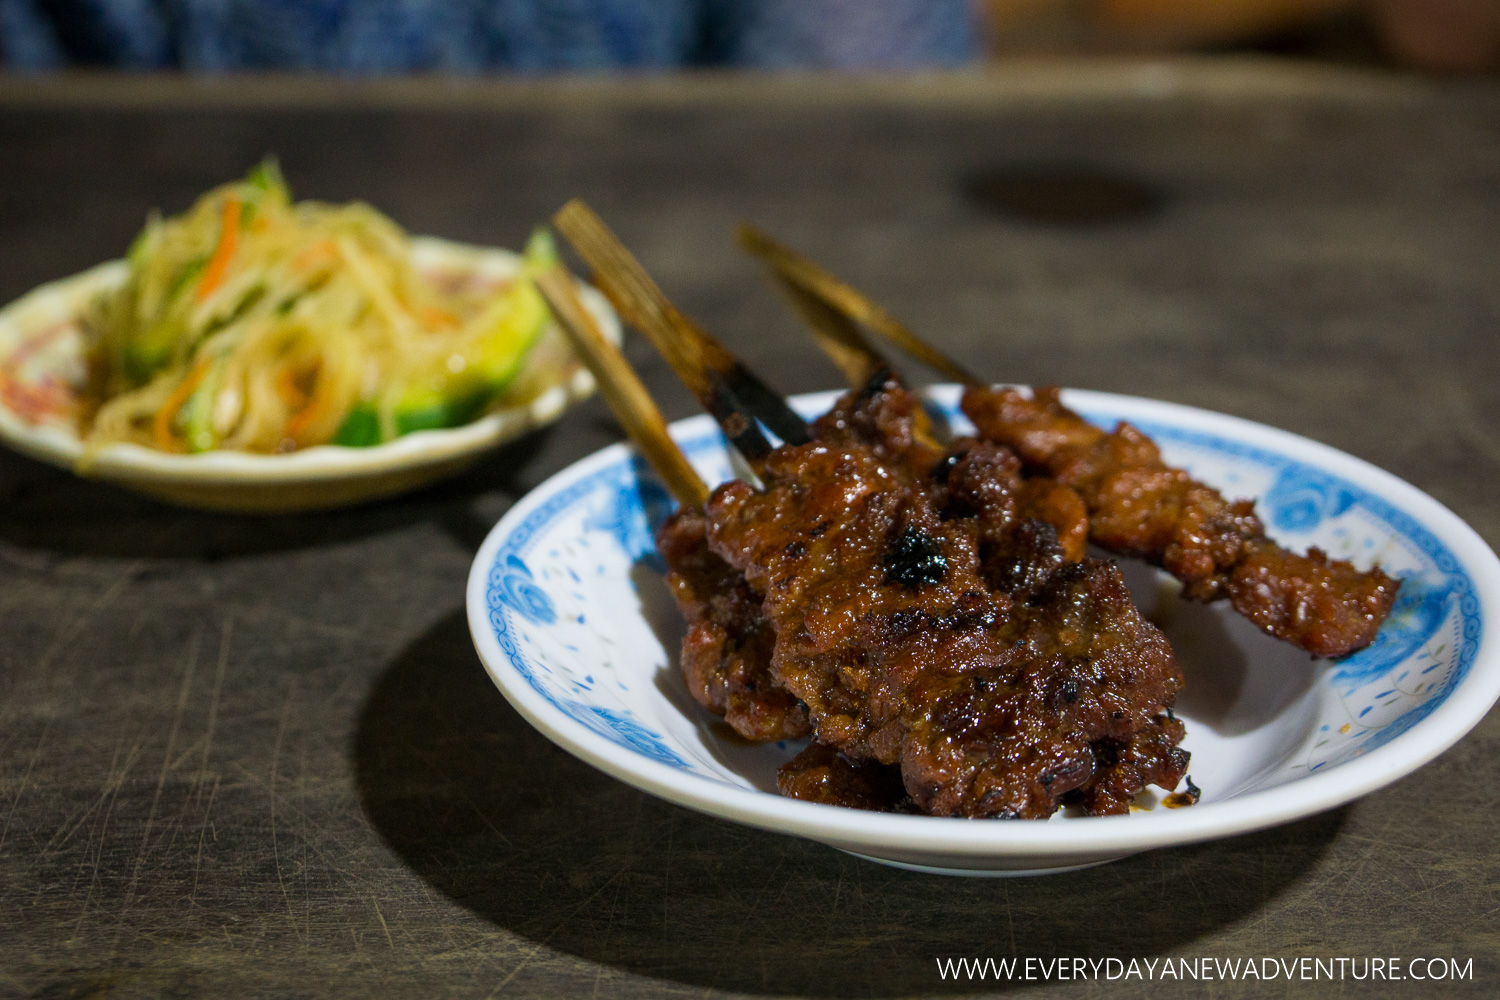 Khmer BBQ, sans mystery meat